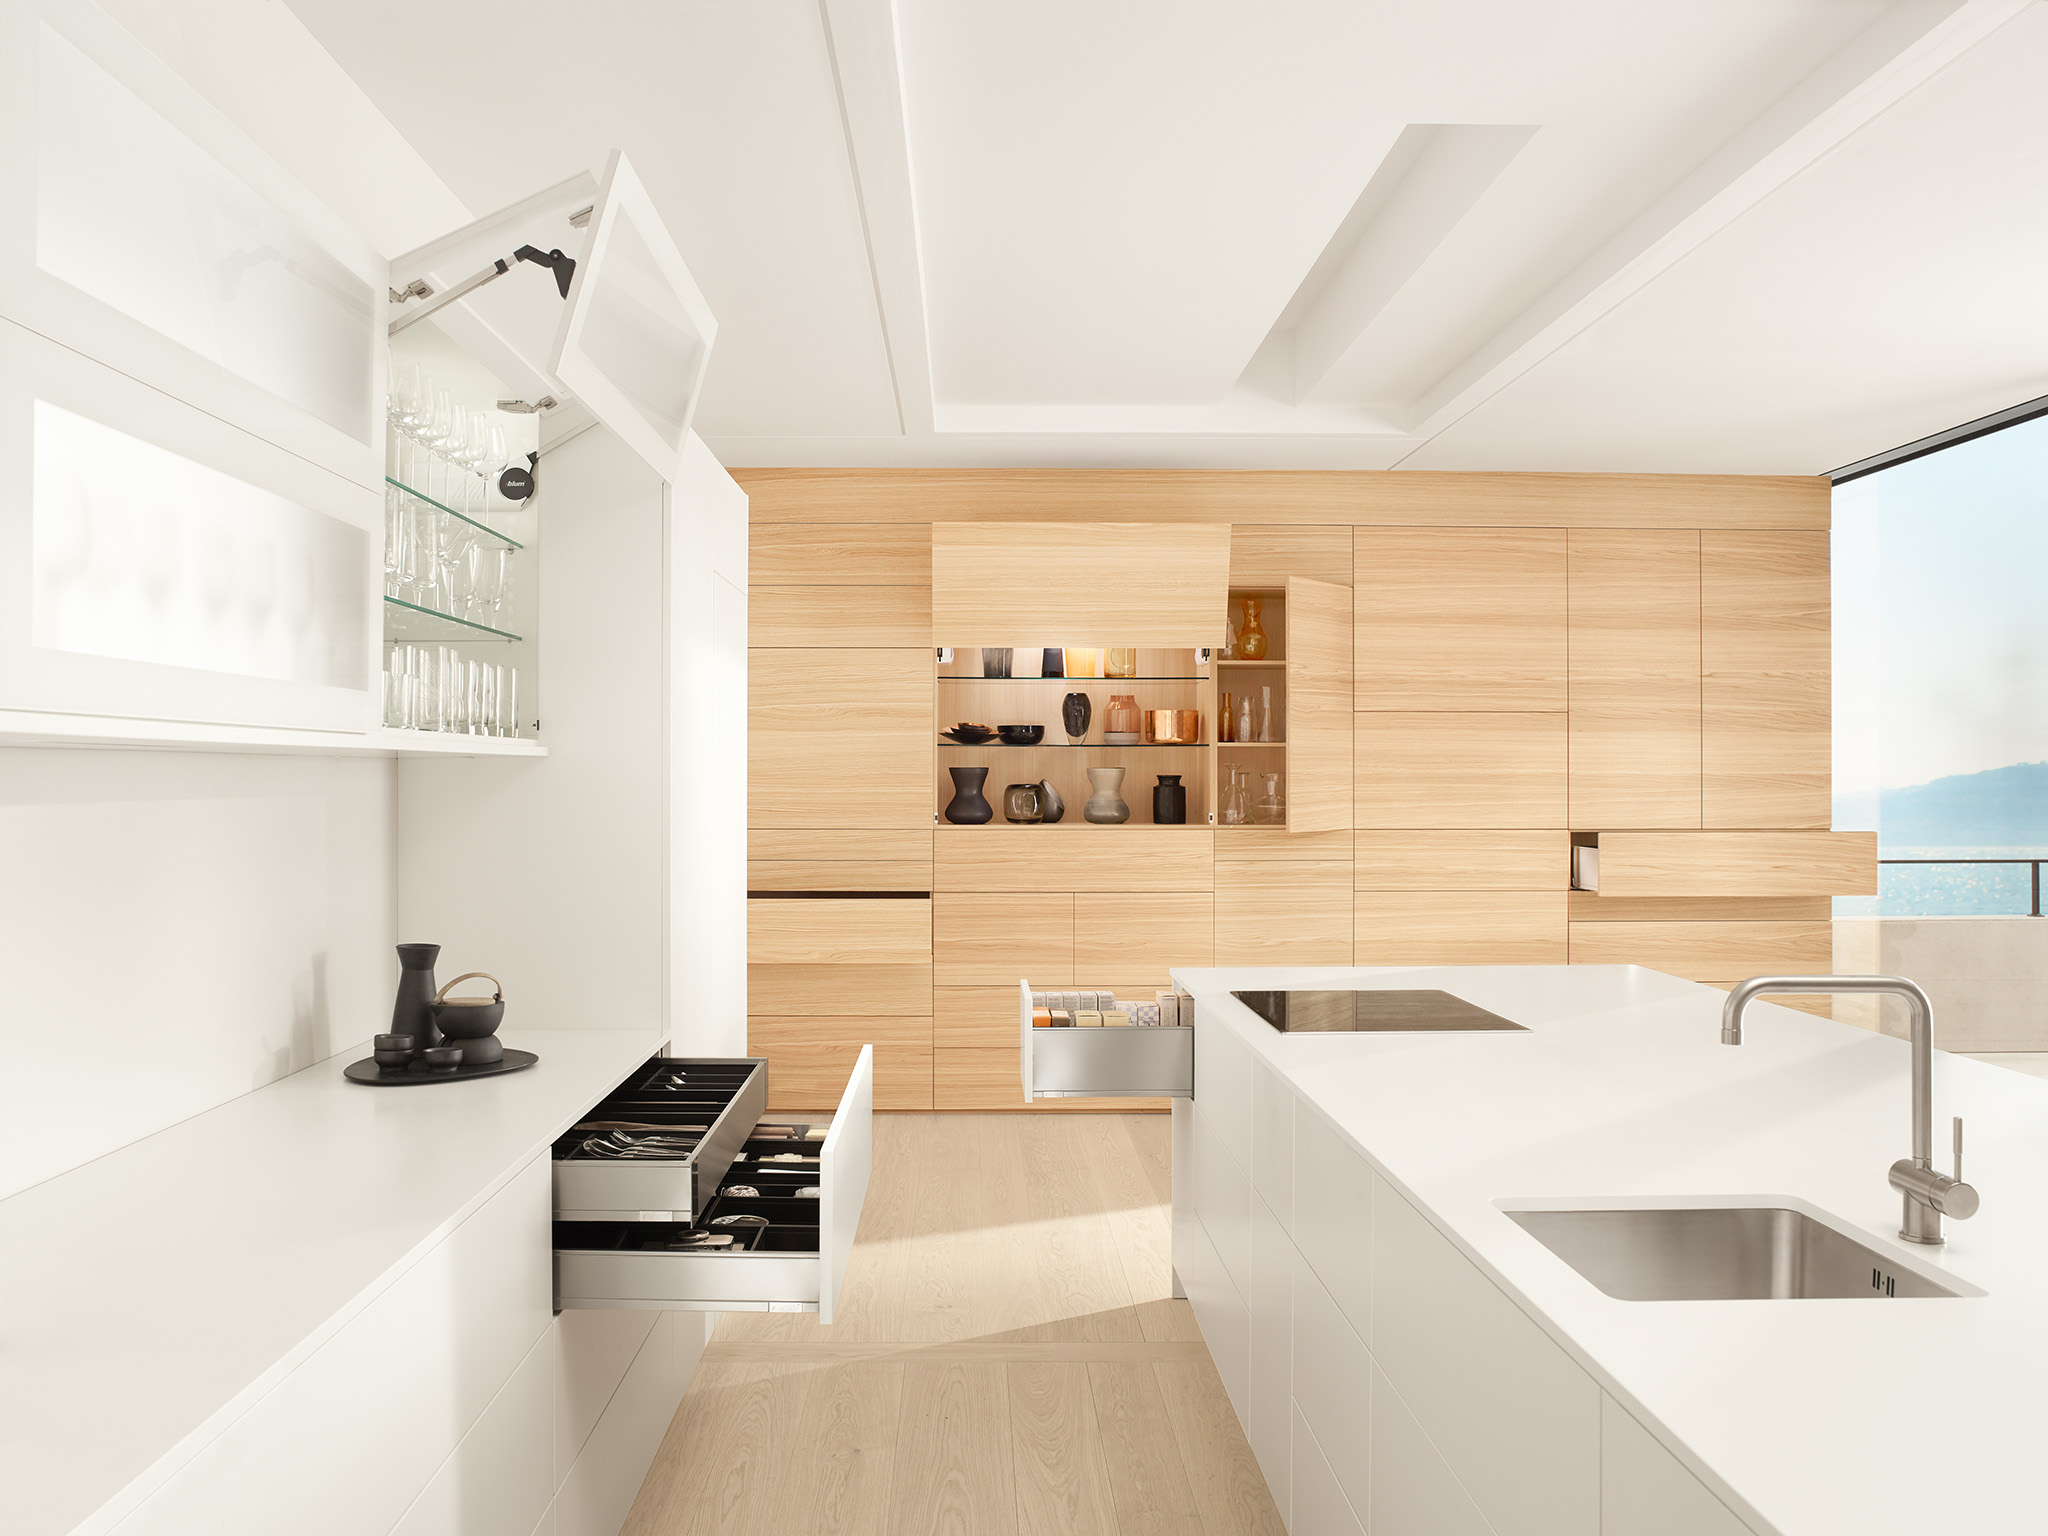 Blum Offers Practical Handle-less Design Options at All Project ...